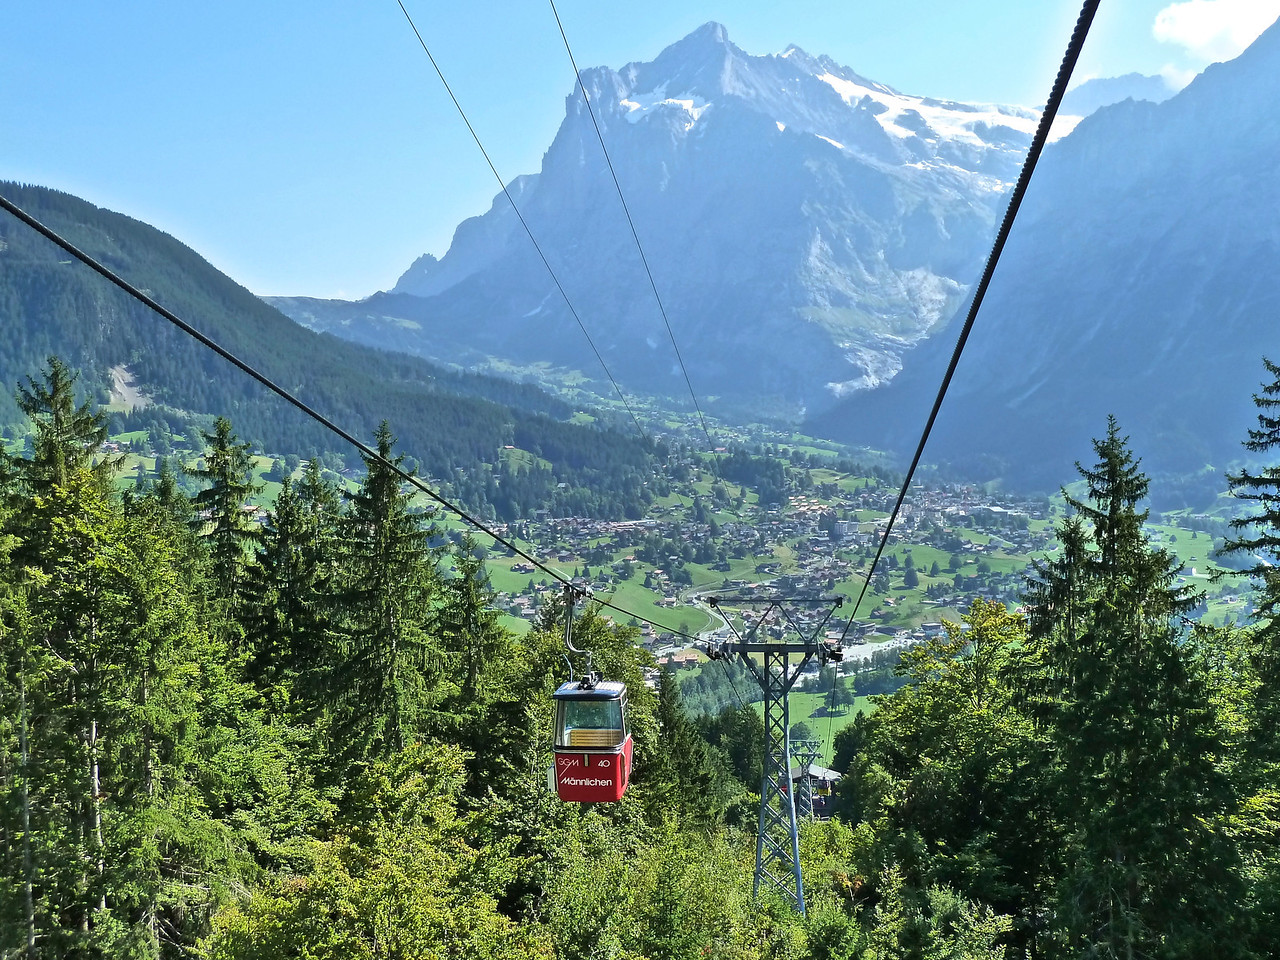 This is the longest gondola ride in Europe - 30 min - with Grindelwald in the valley and the Wetterhorn mountain (12,143 ft) in the back. The house with our apartment is right at the foot of that mountain!